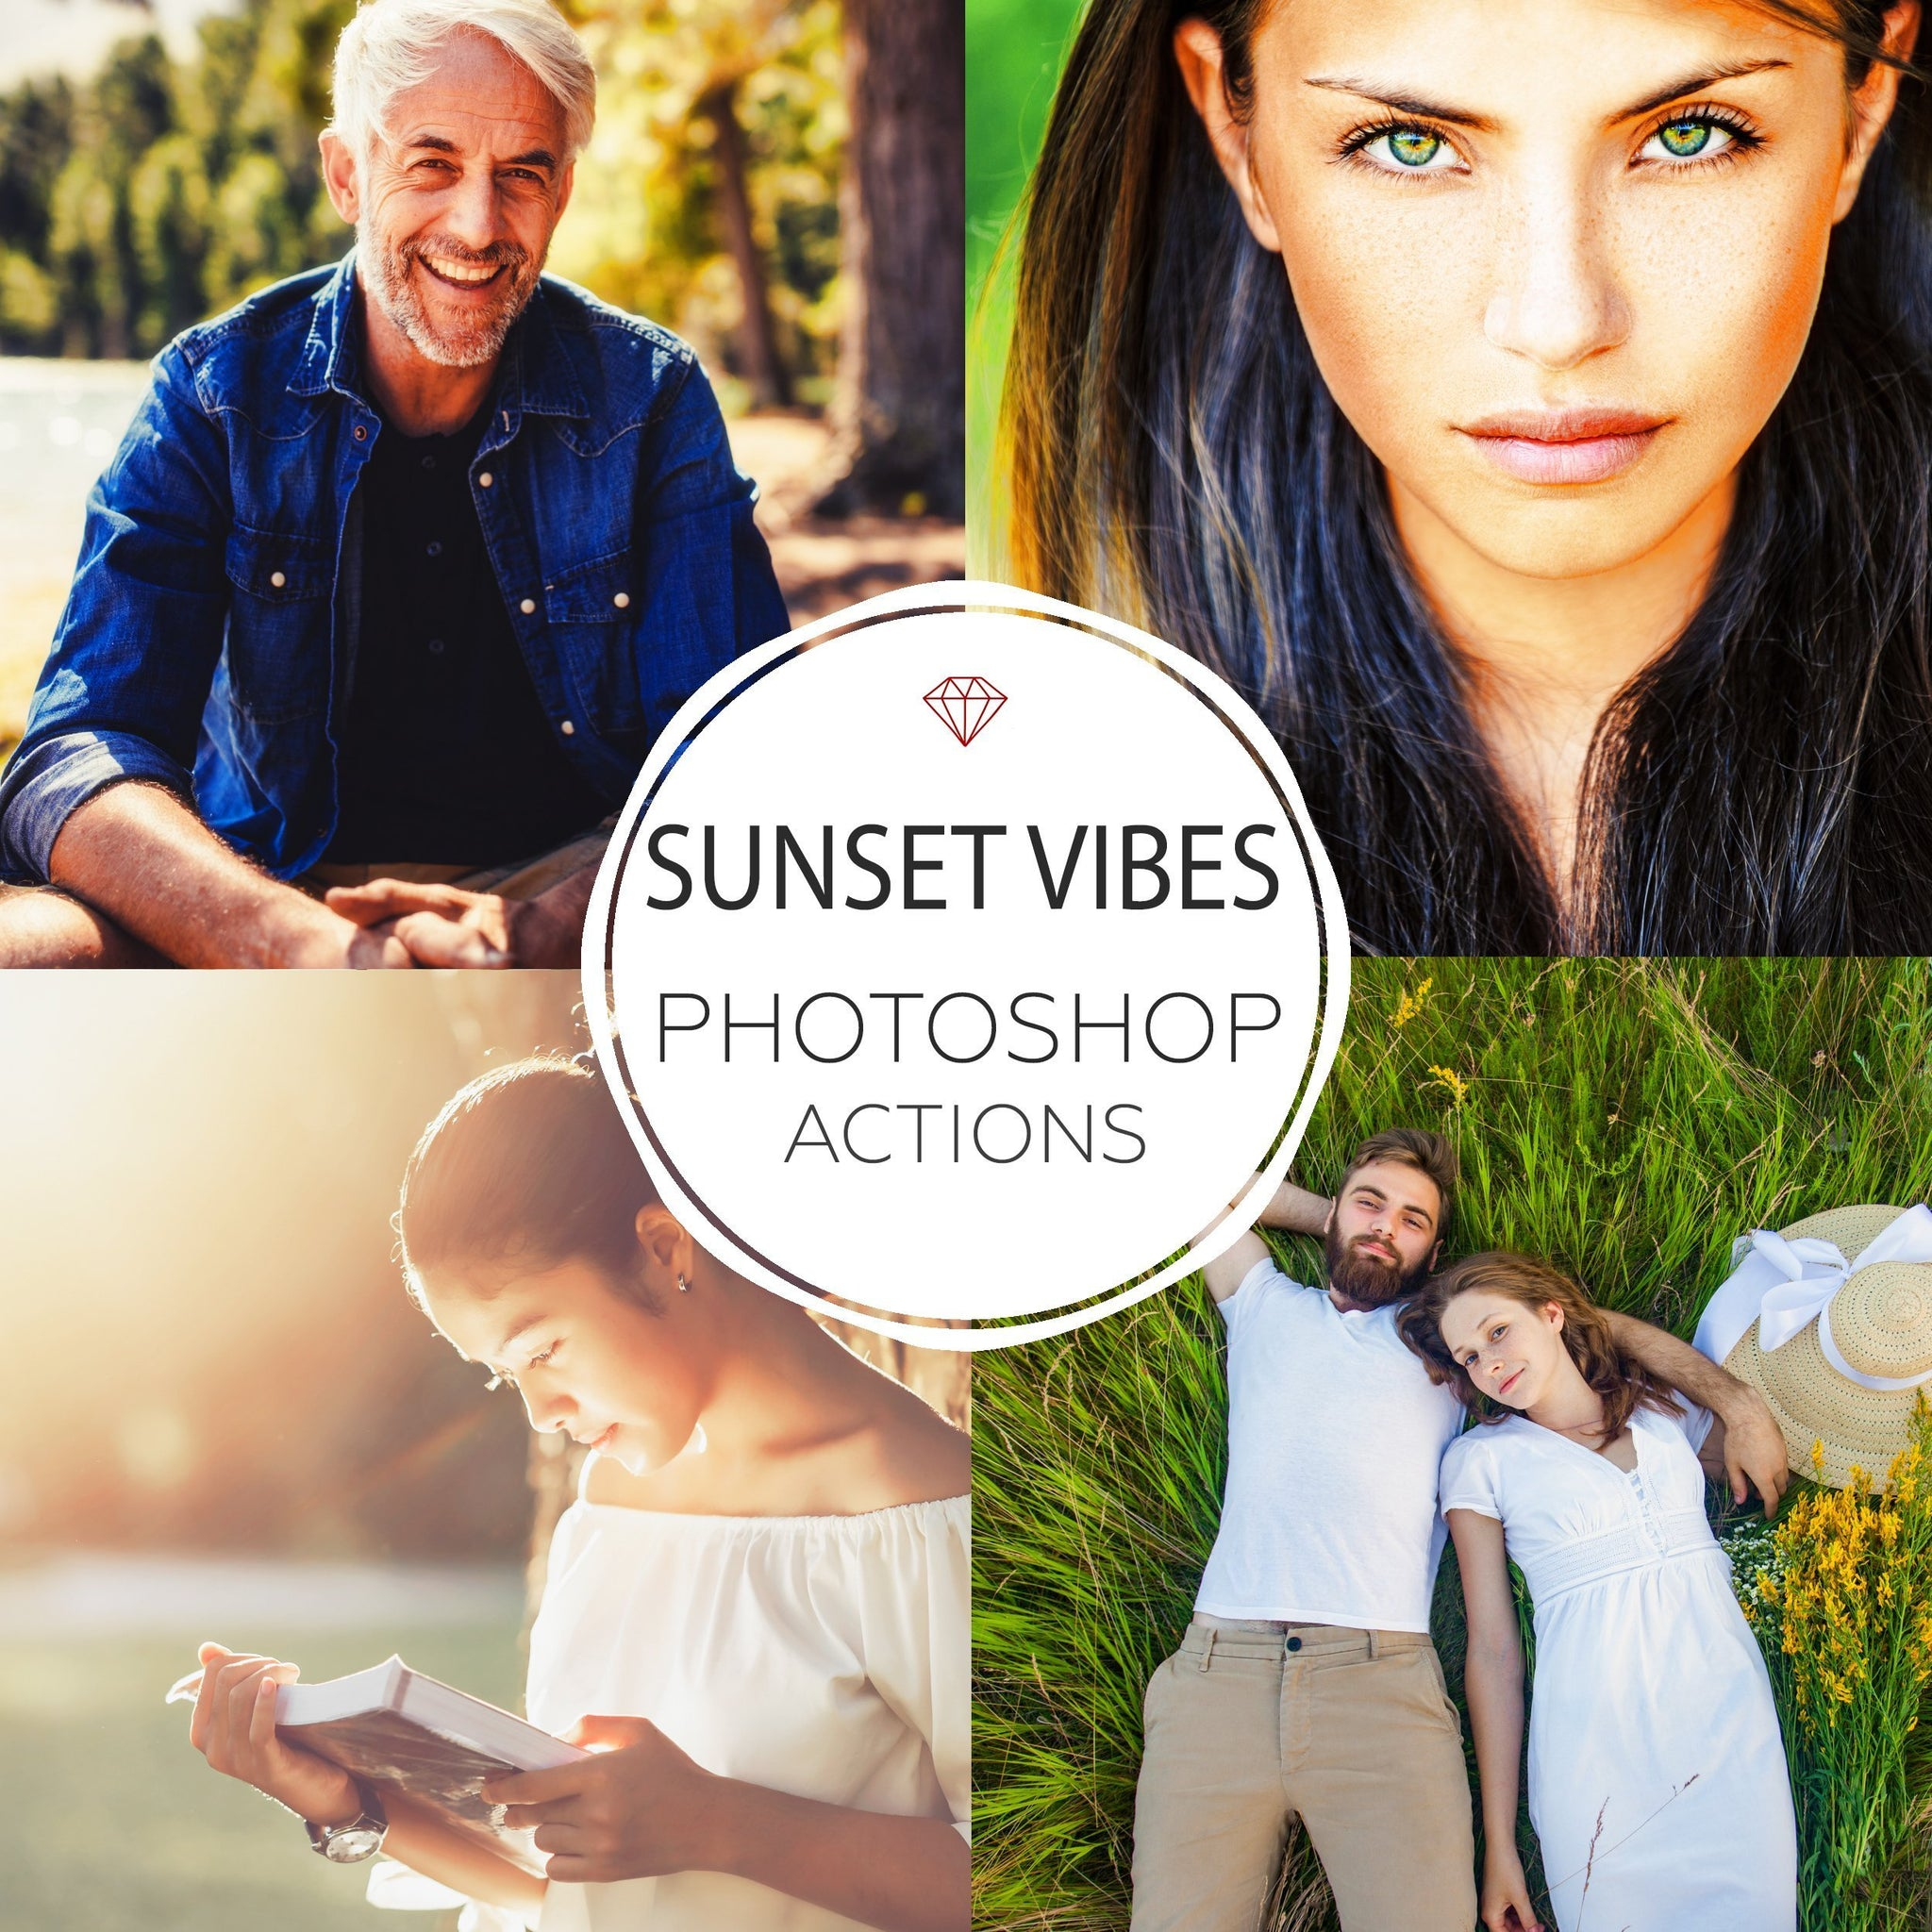 Sunset Vibes - Photoshop Actions